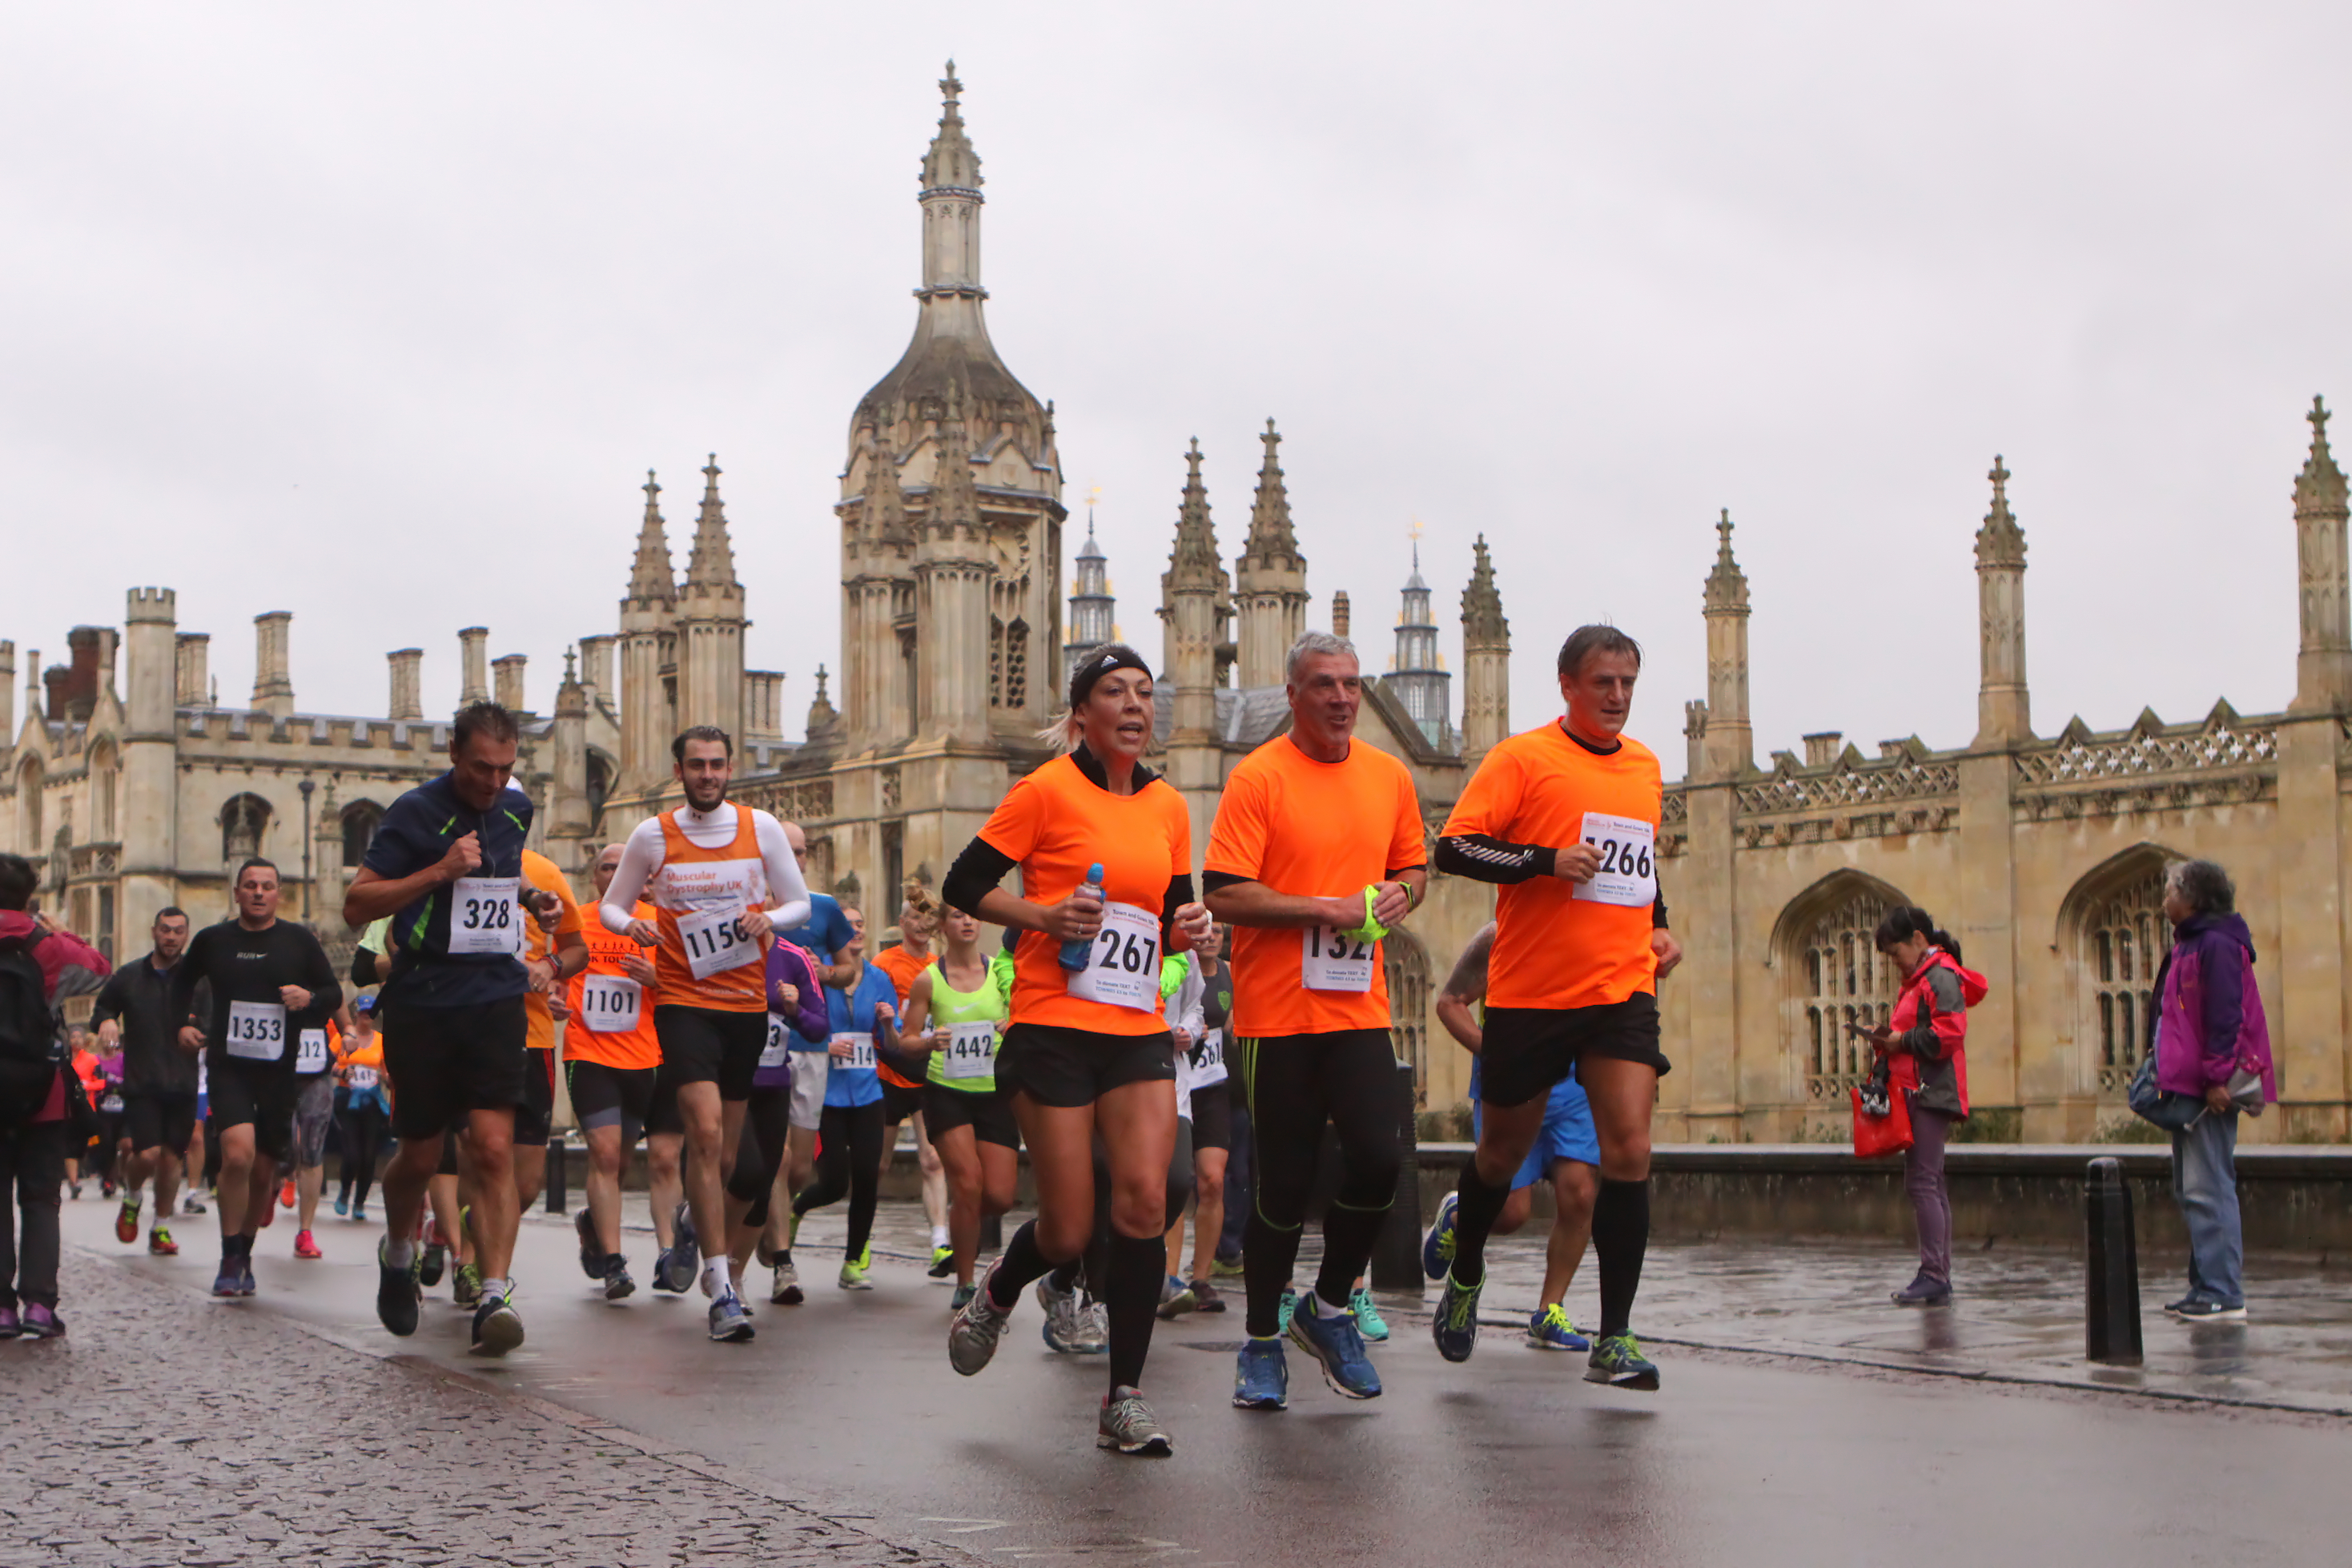 2016 Cambridge Town&Gown 10k, in aid of Muscular Dystrophy